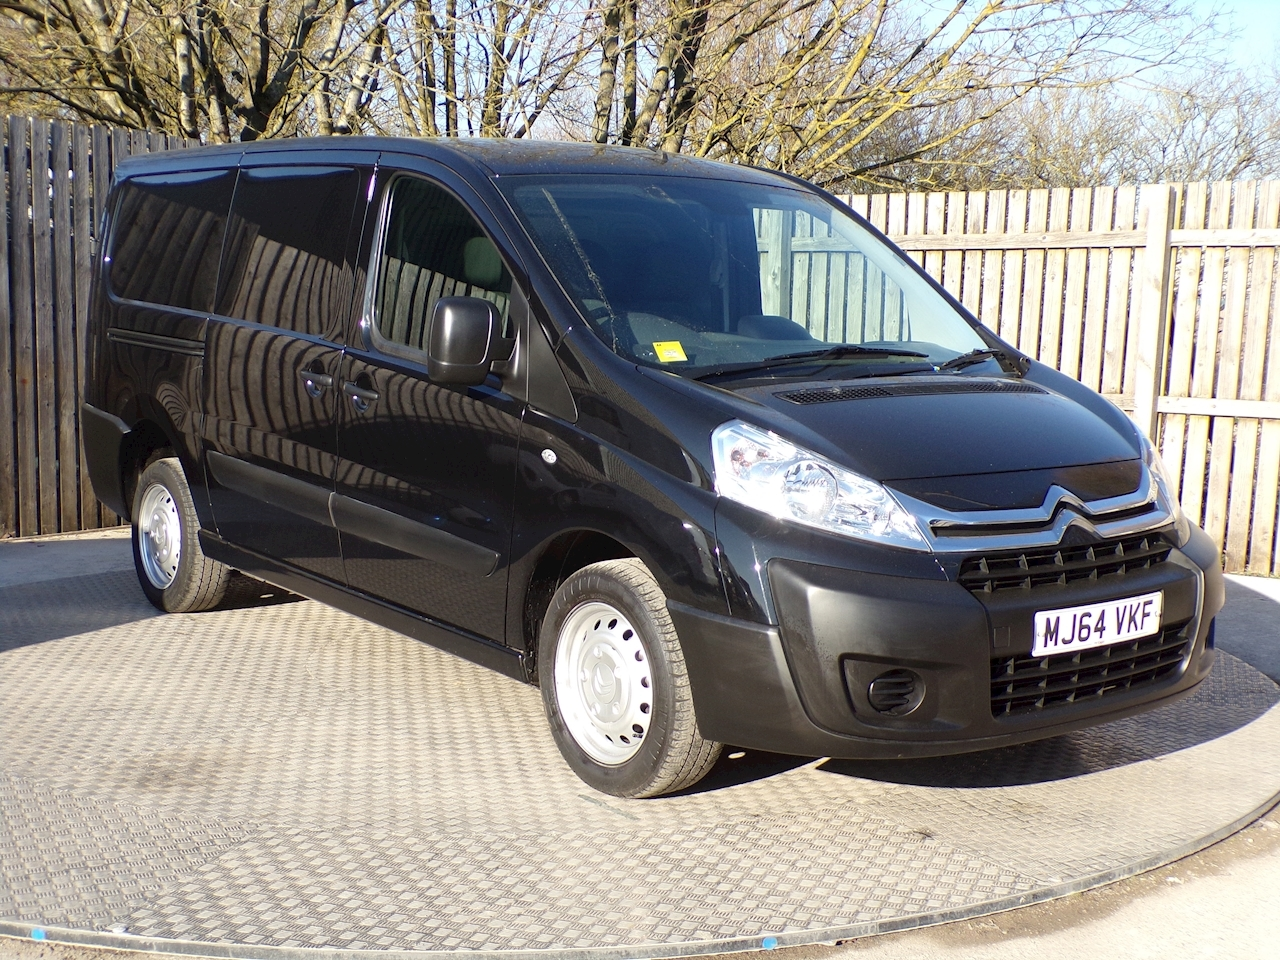 Citroen Dispatch 1200 L2h1 DISPATCH 1200 L2H1 EN-RIS